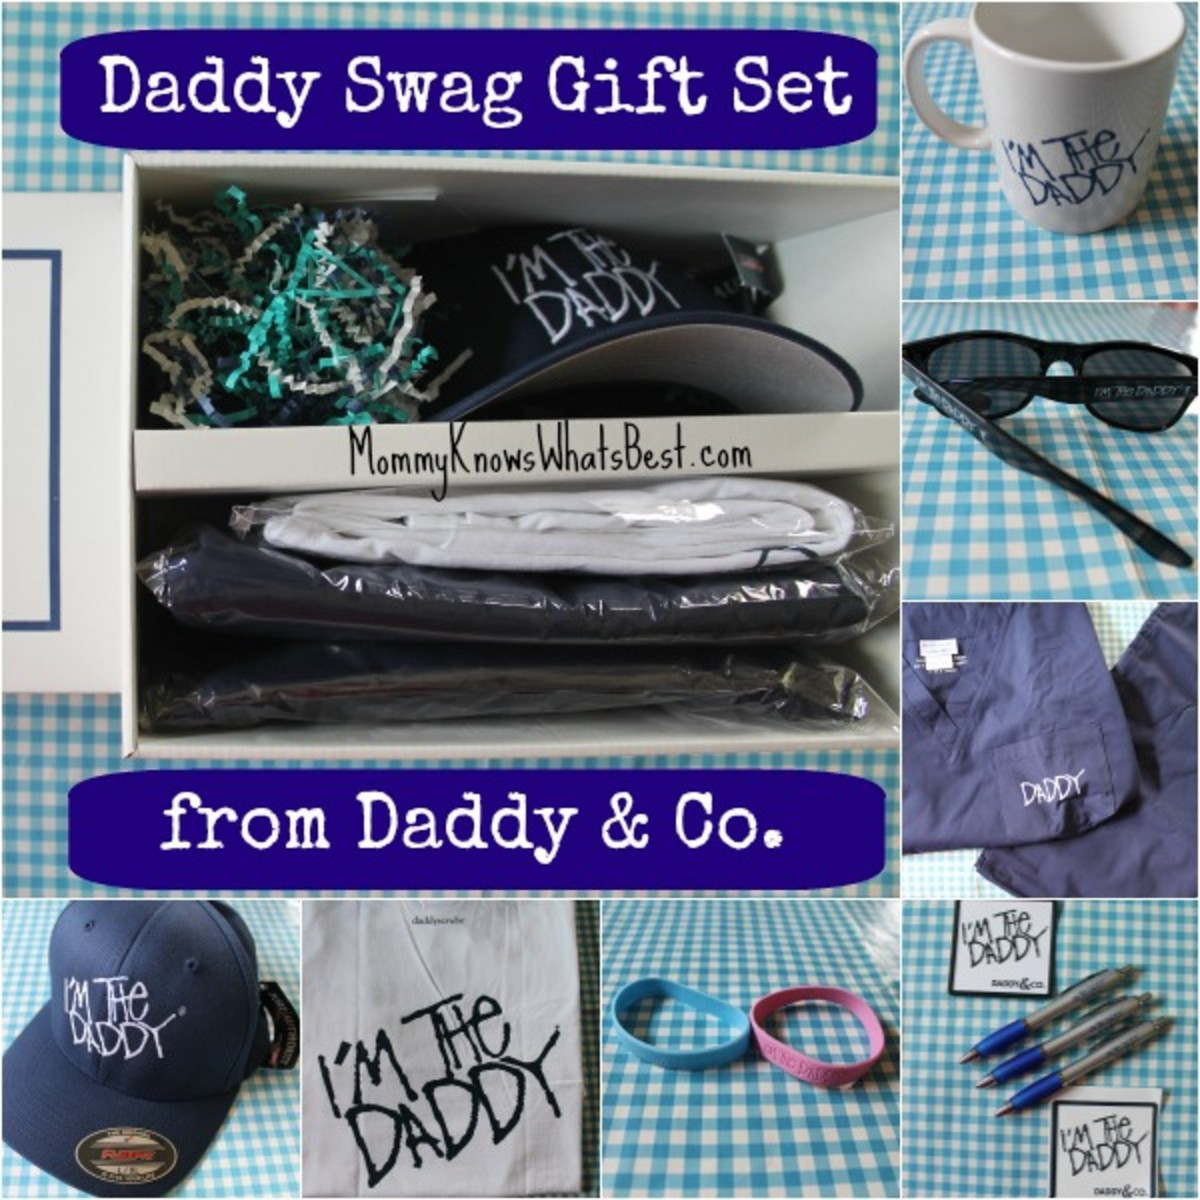 The Daddy Swag Gift Set from Daddy & Co. as featured on Mommy Knows What's Best.